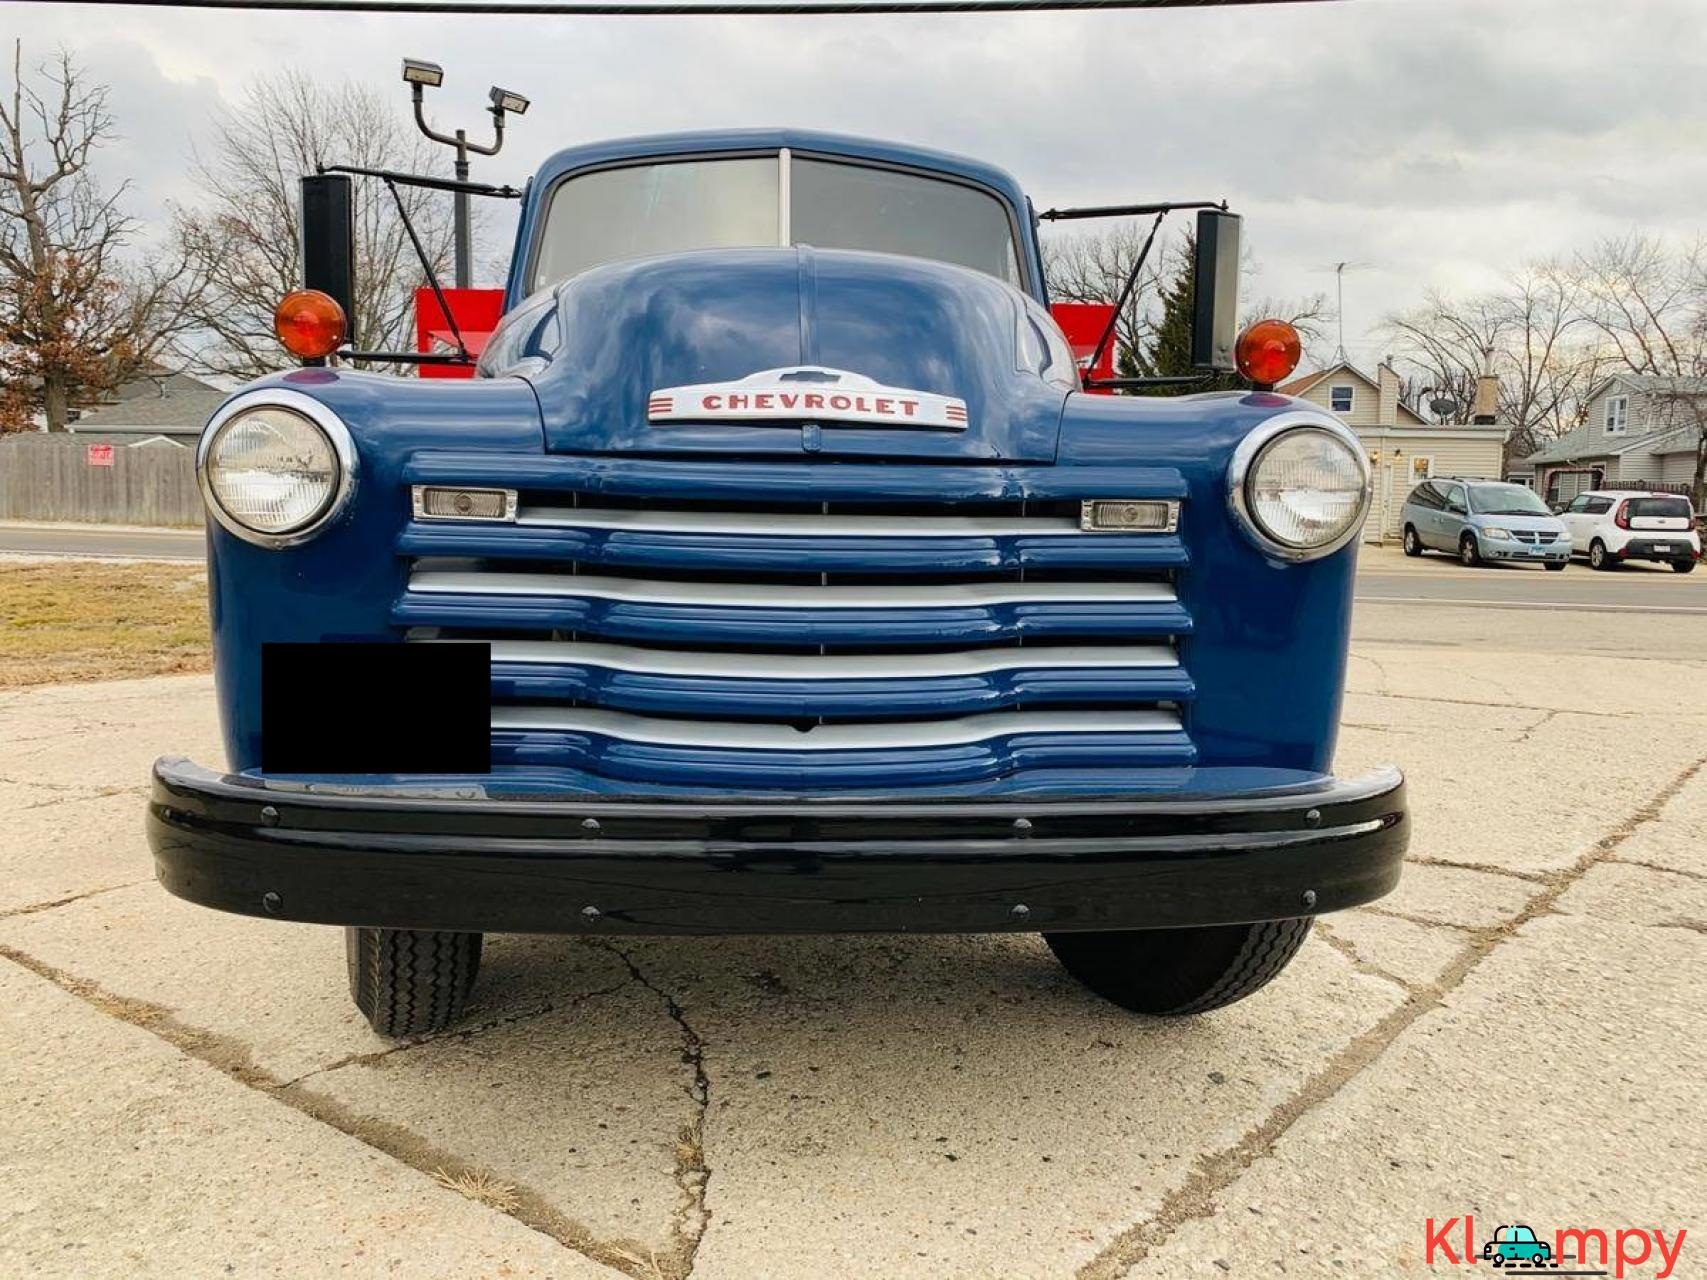 1951 Chevrolet Flat Bed Truck 235  6 CYL - 3/20